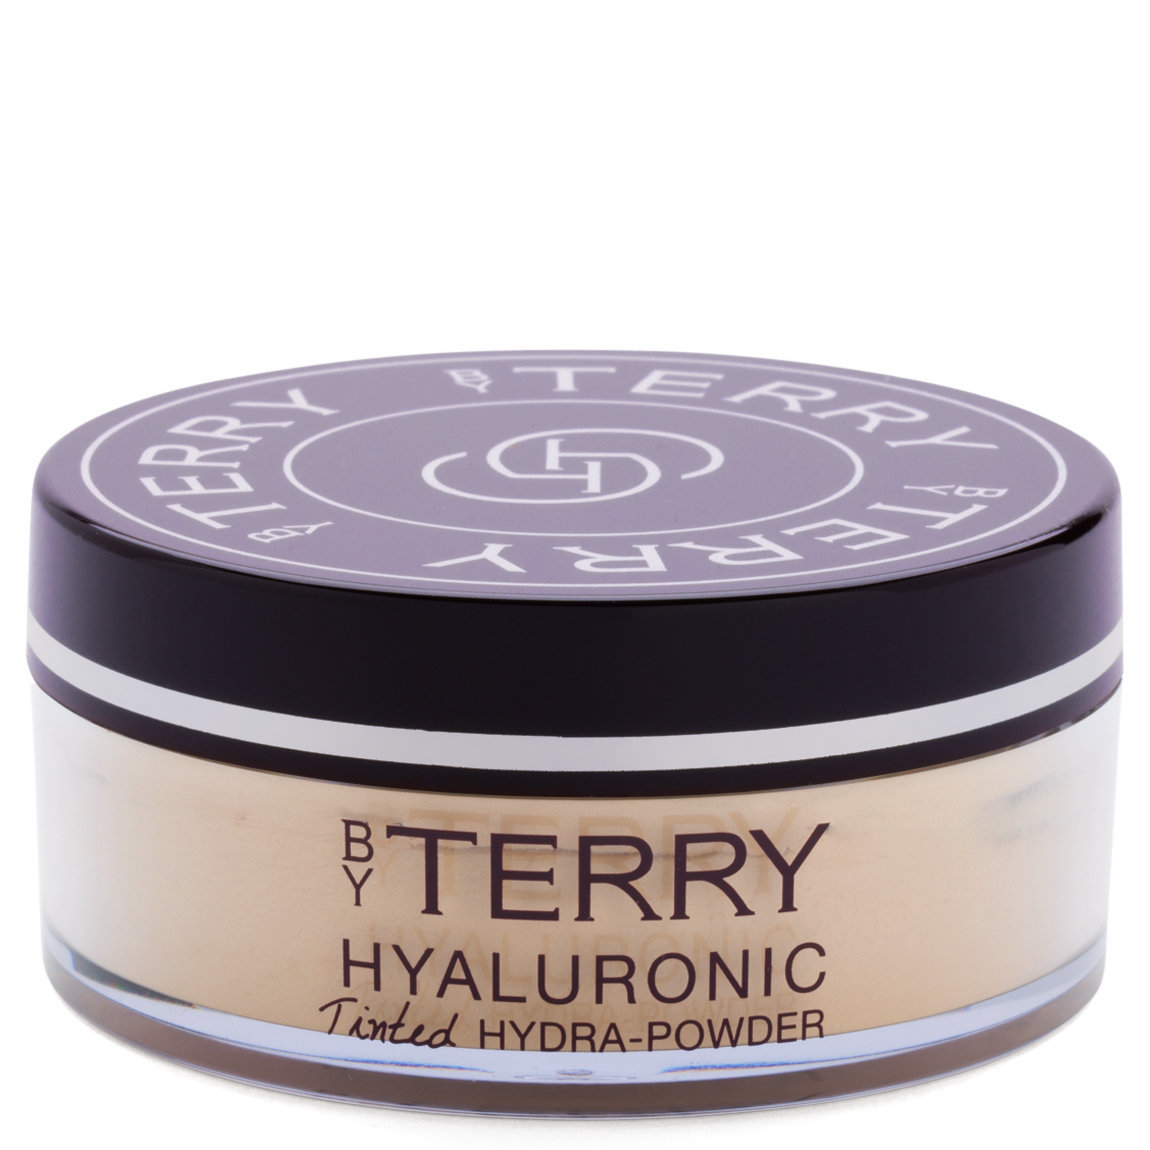 BY TERRY Hyaluronic Tinted Hydra-Powder N100 Fair alternative view 1.